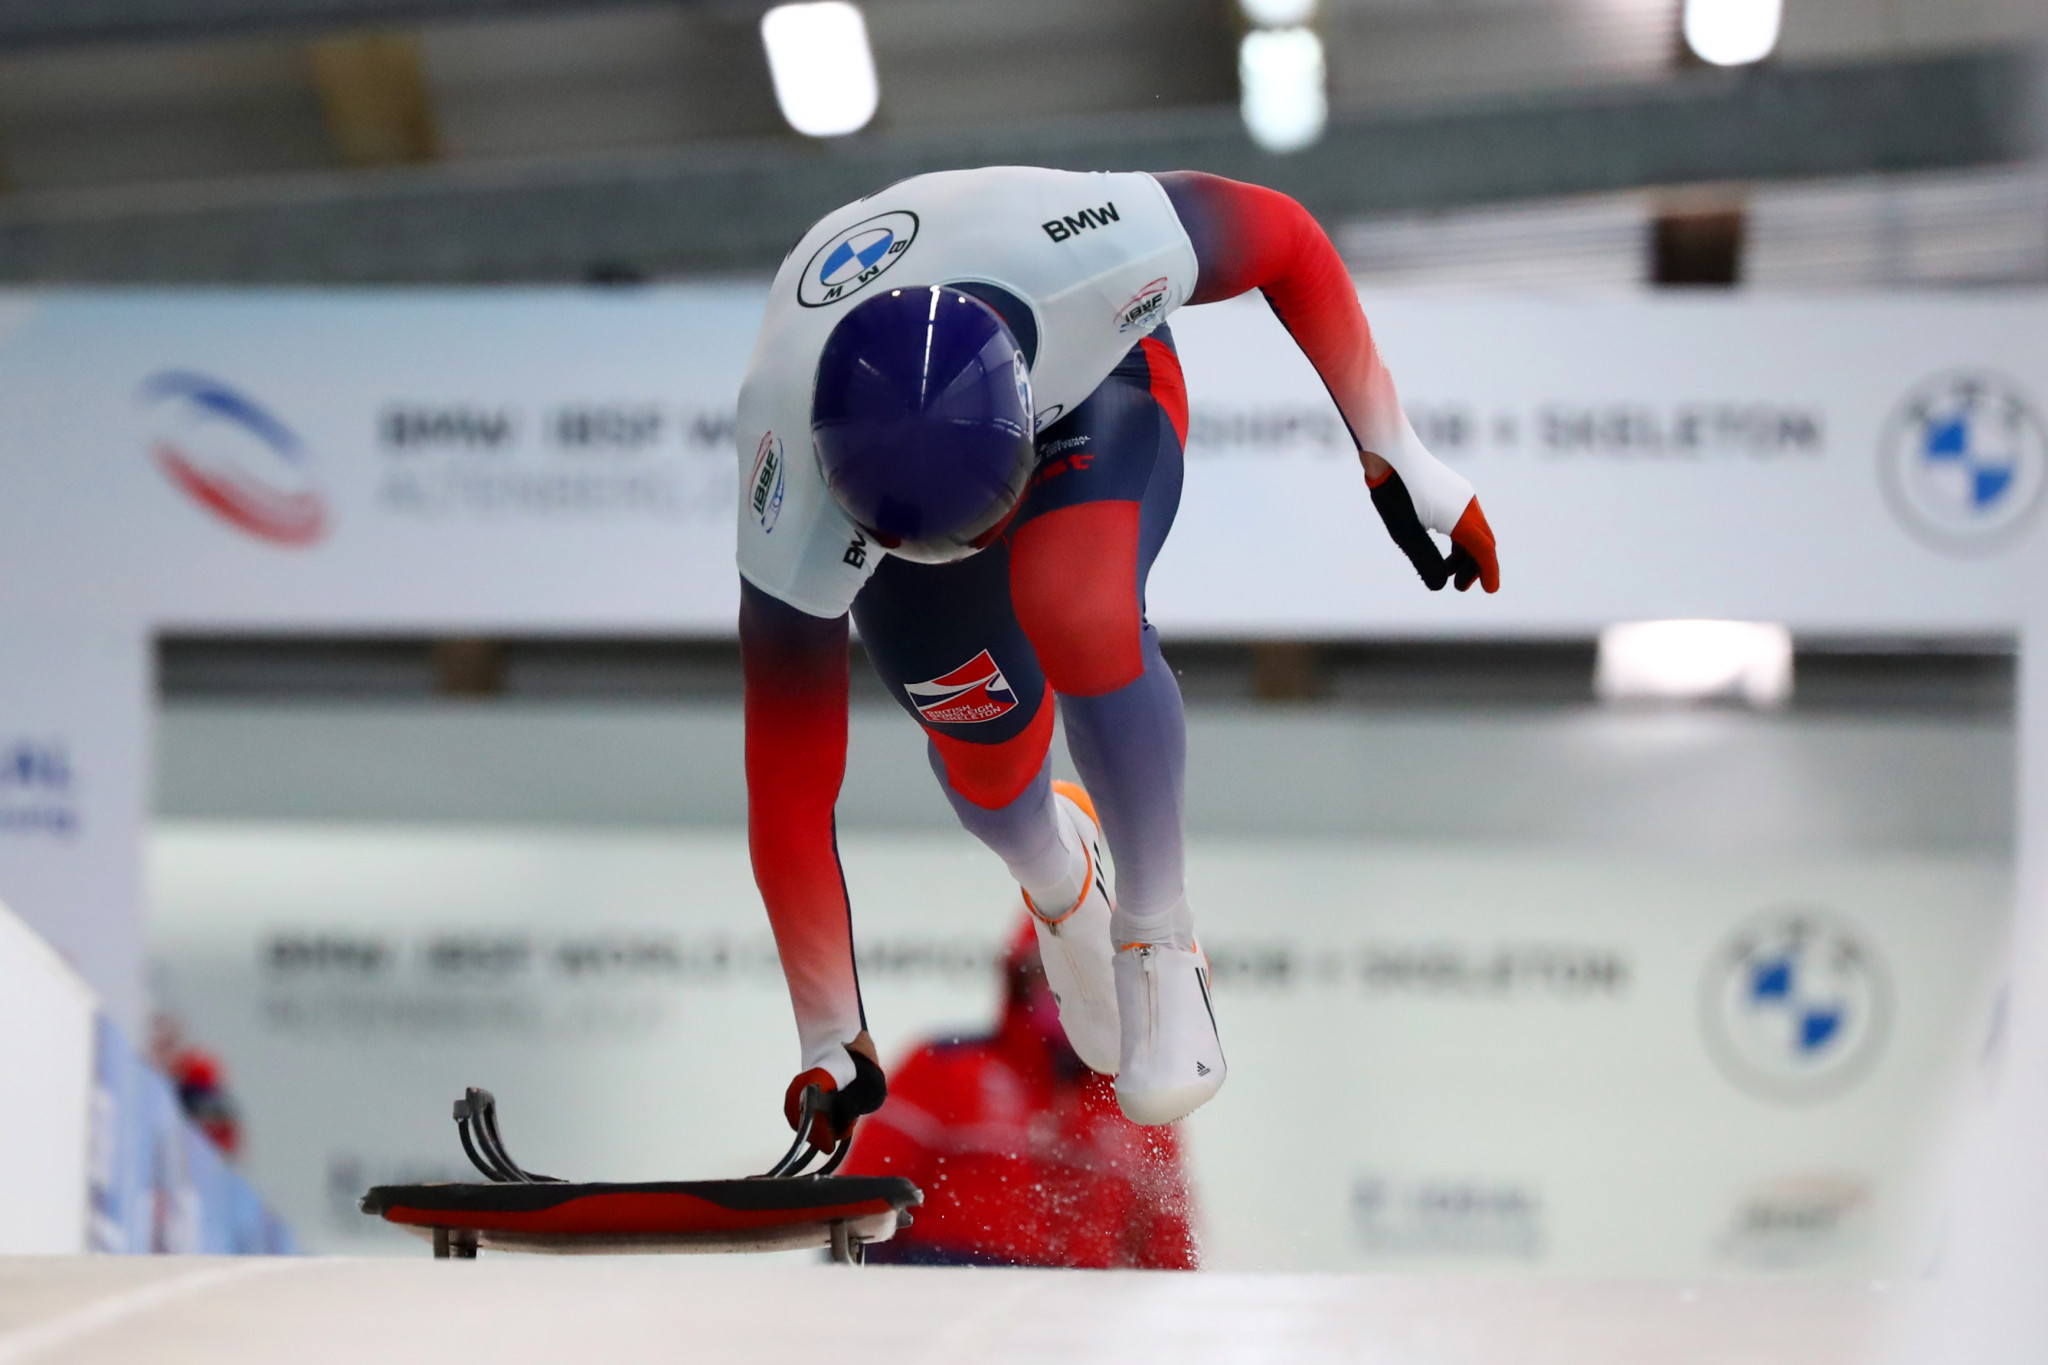 Britain has three gold, one silver and five bronze medals in skeleton at the Winter Olympic Games ©Getty Images